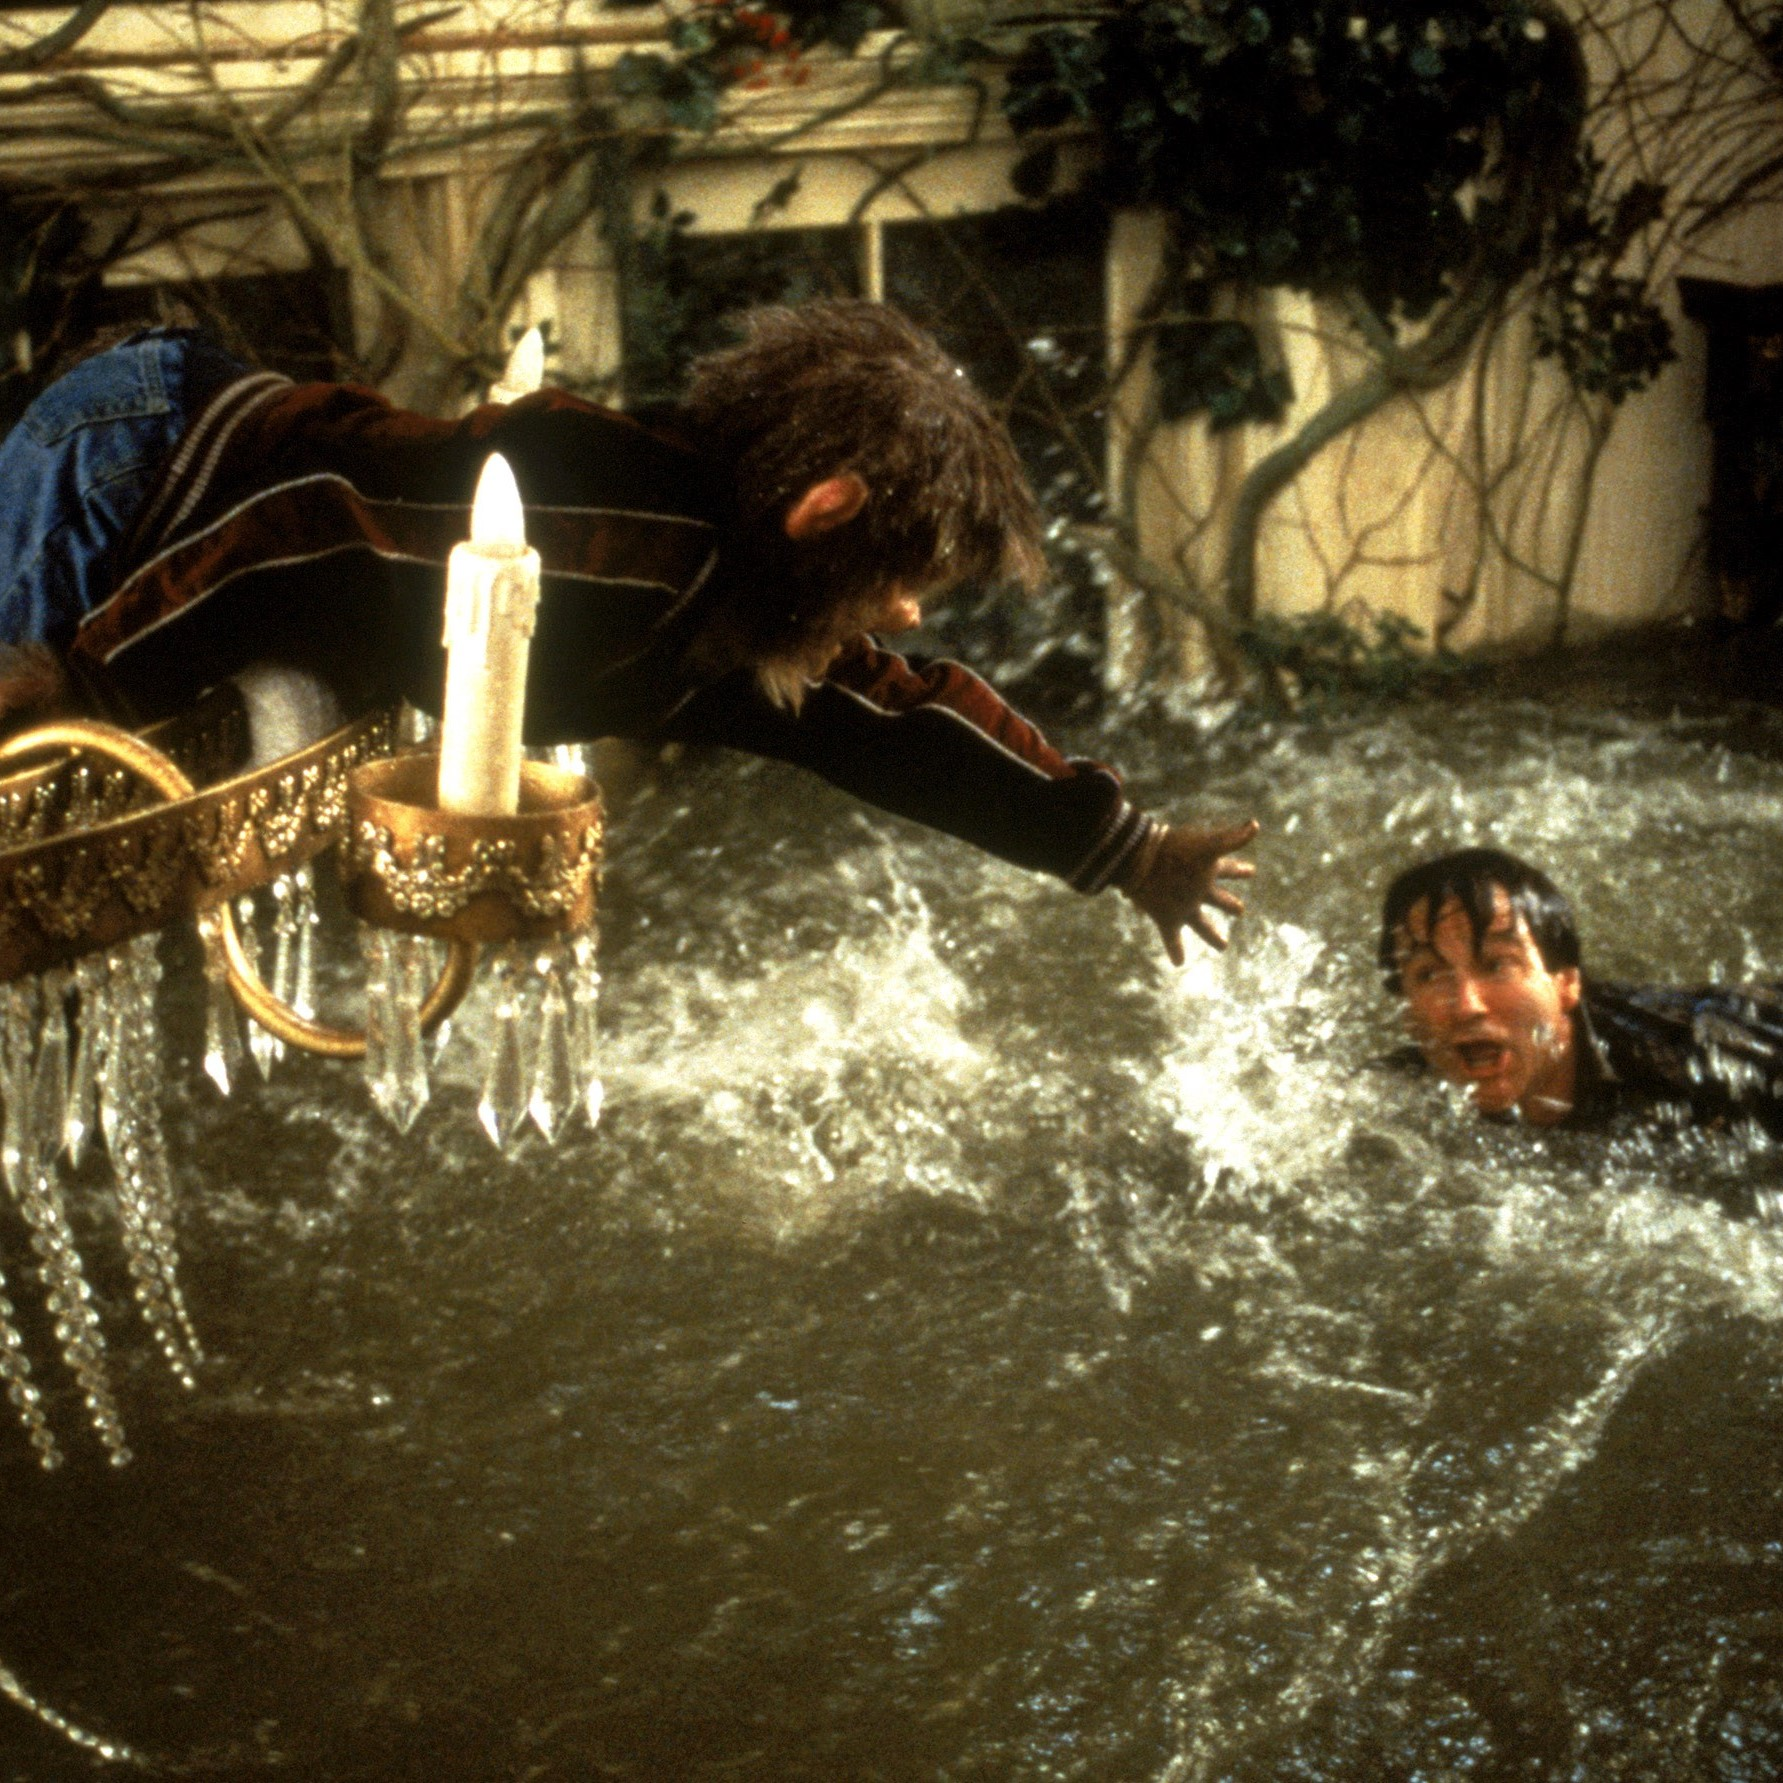 Okay maybe this flood was just from playing too much Jumanji.